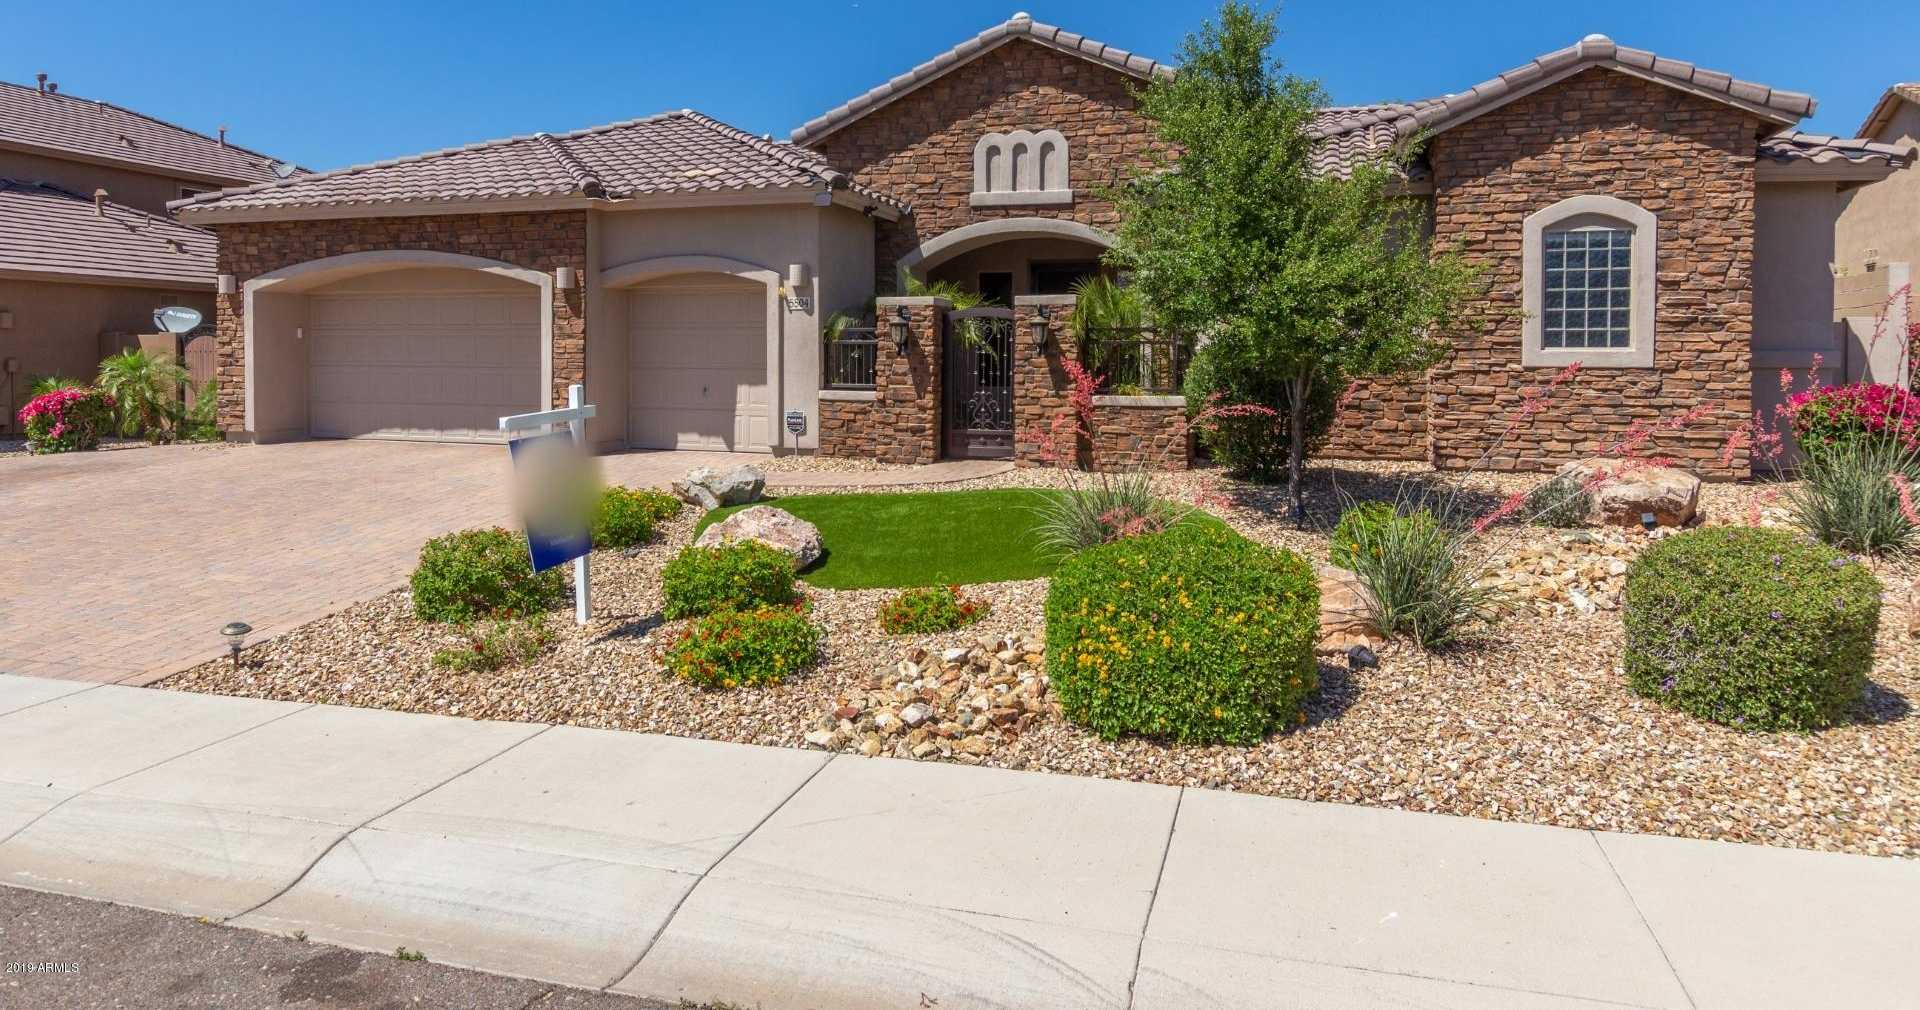 $545,000 - 4Br/3Ba - Home for Sale in Stetson Valley Parcels 30 31 32 33, Phoenix